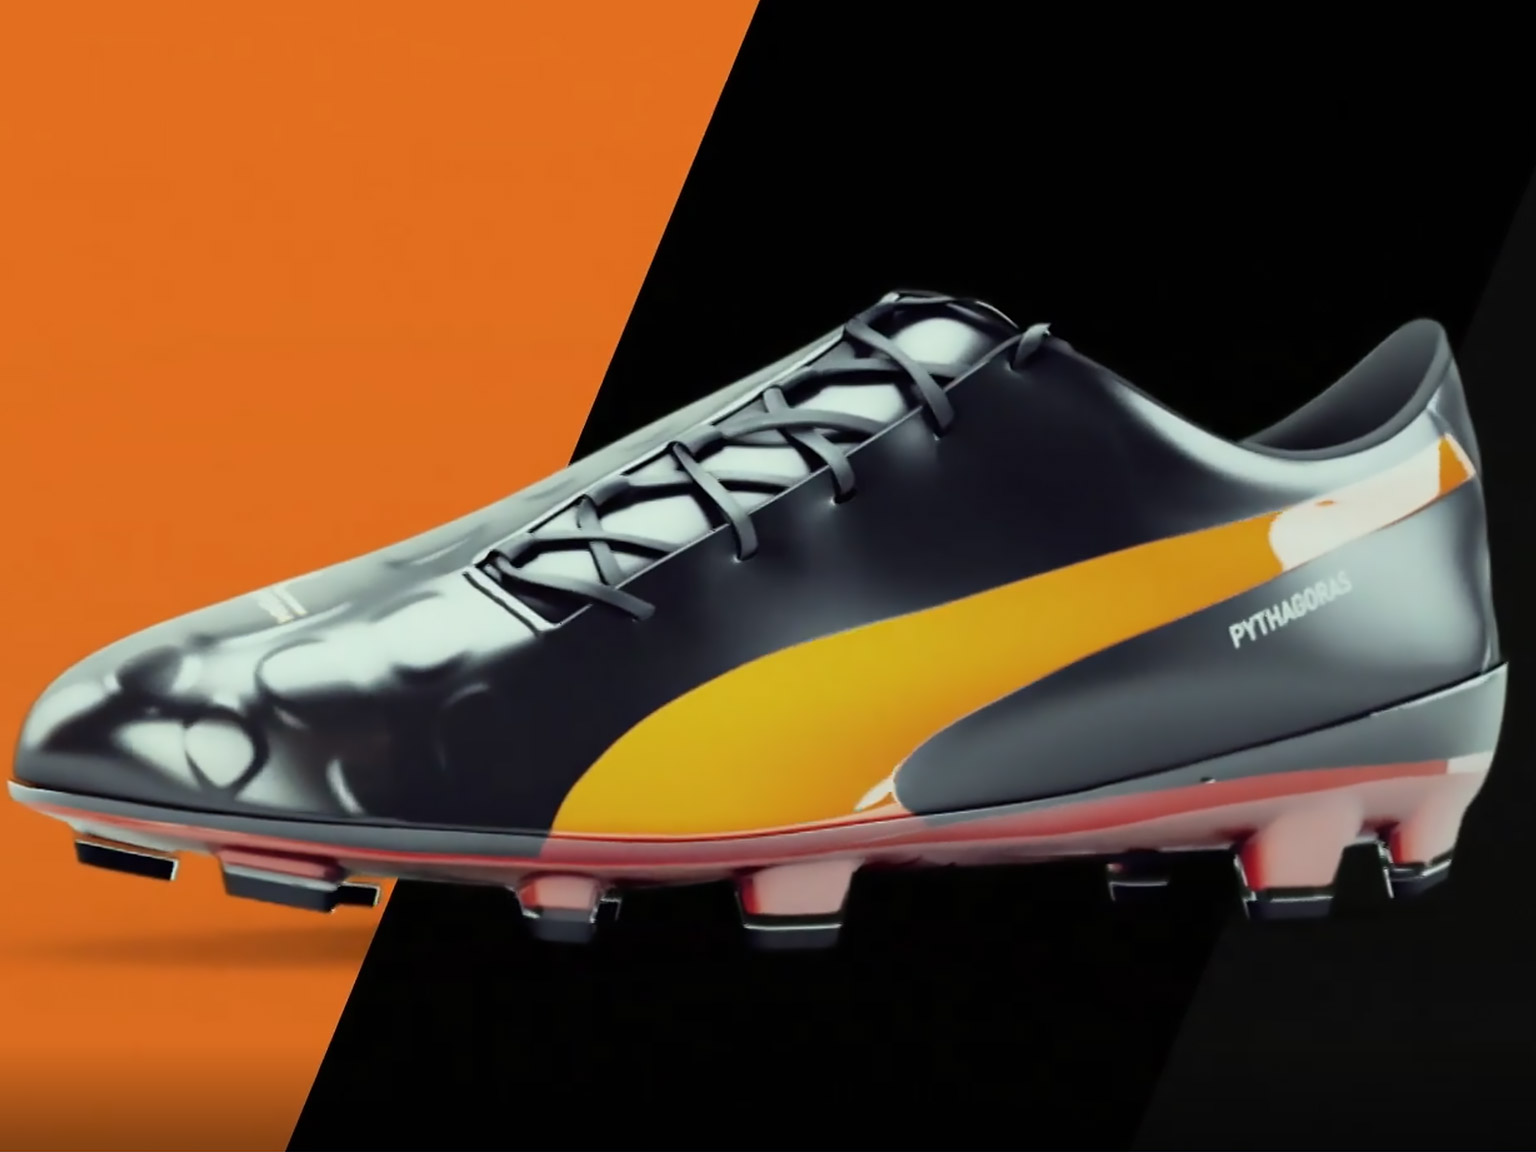 PUMA's Evolocity Football Boot